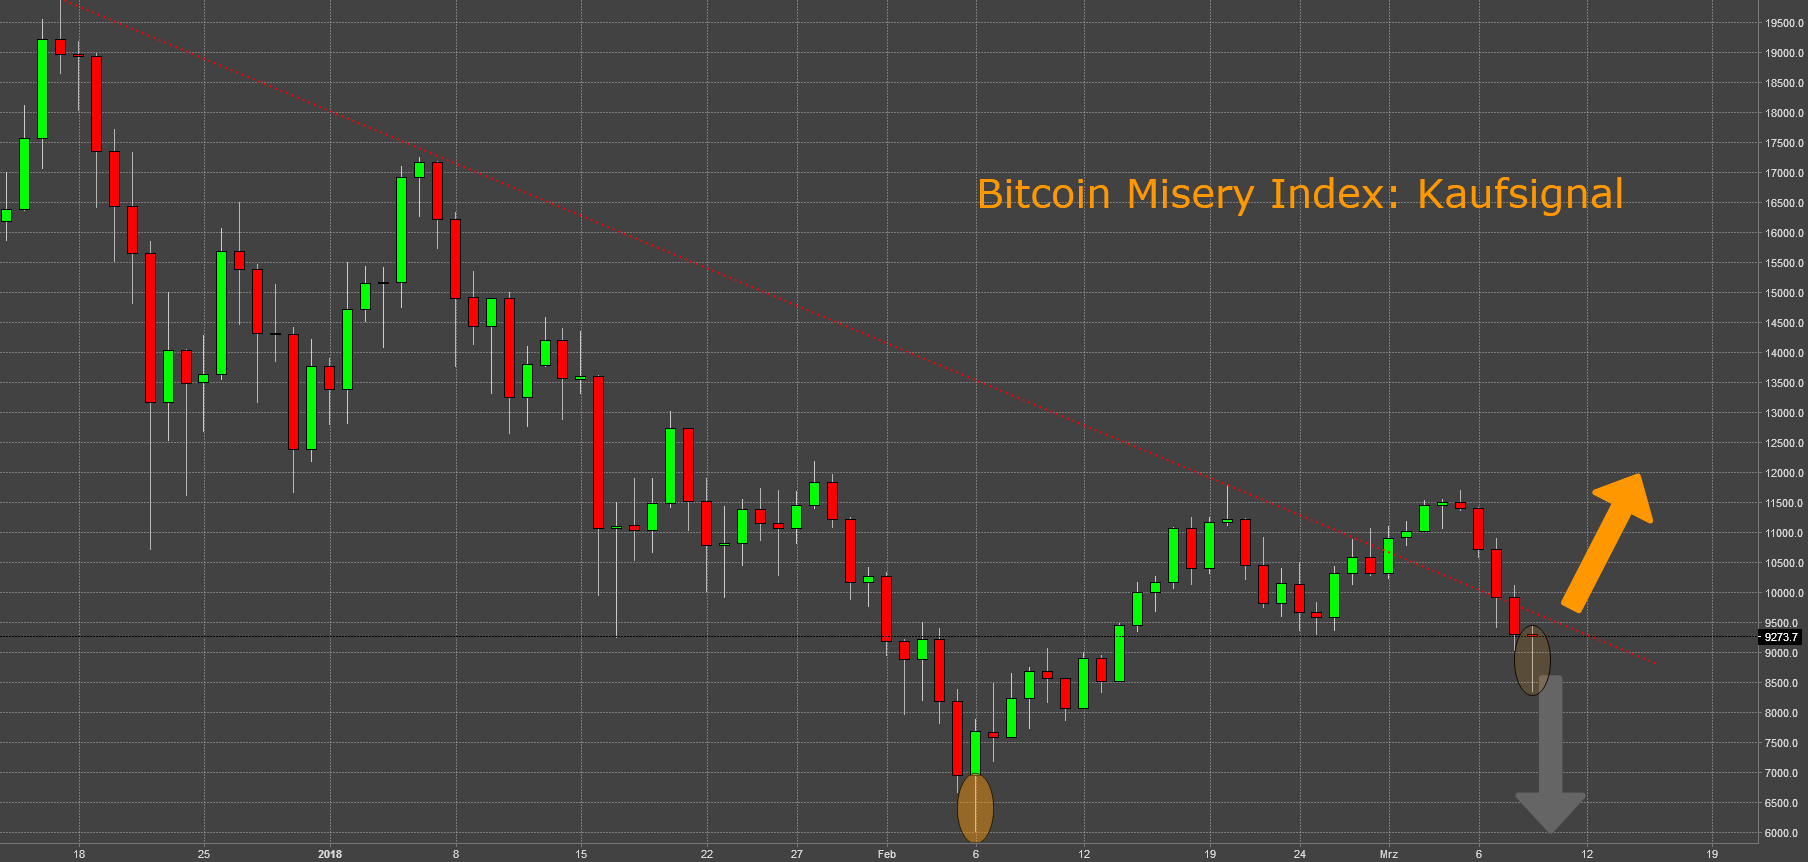 Bitcoin Misery Index: Kaufsignal